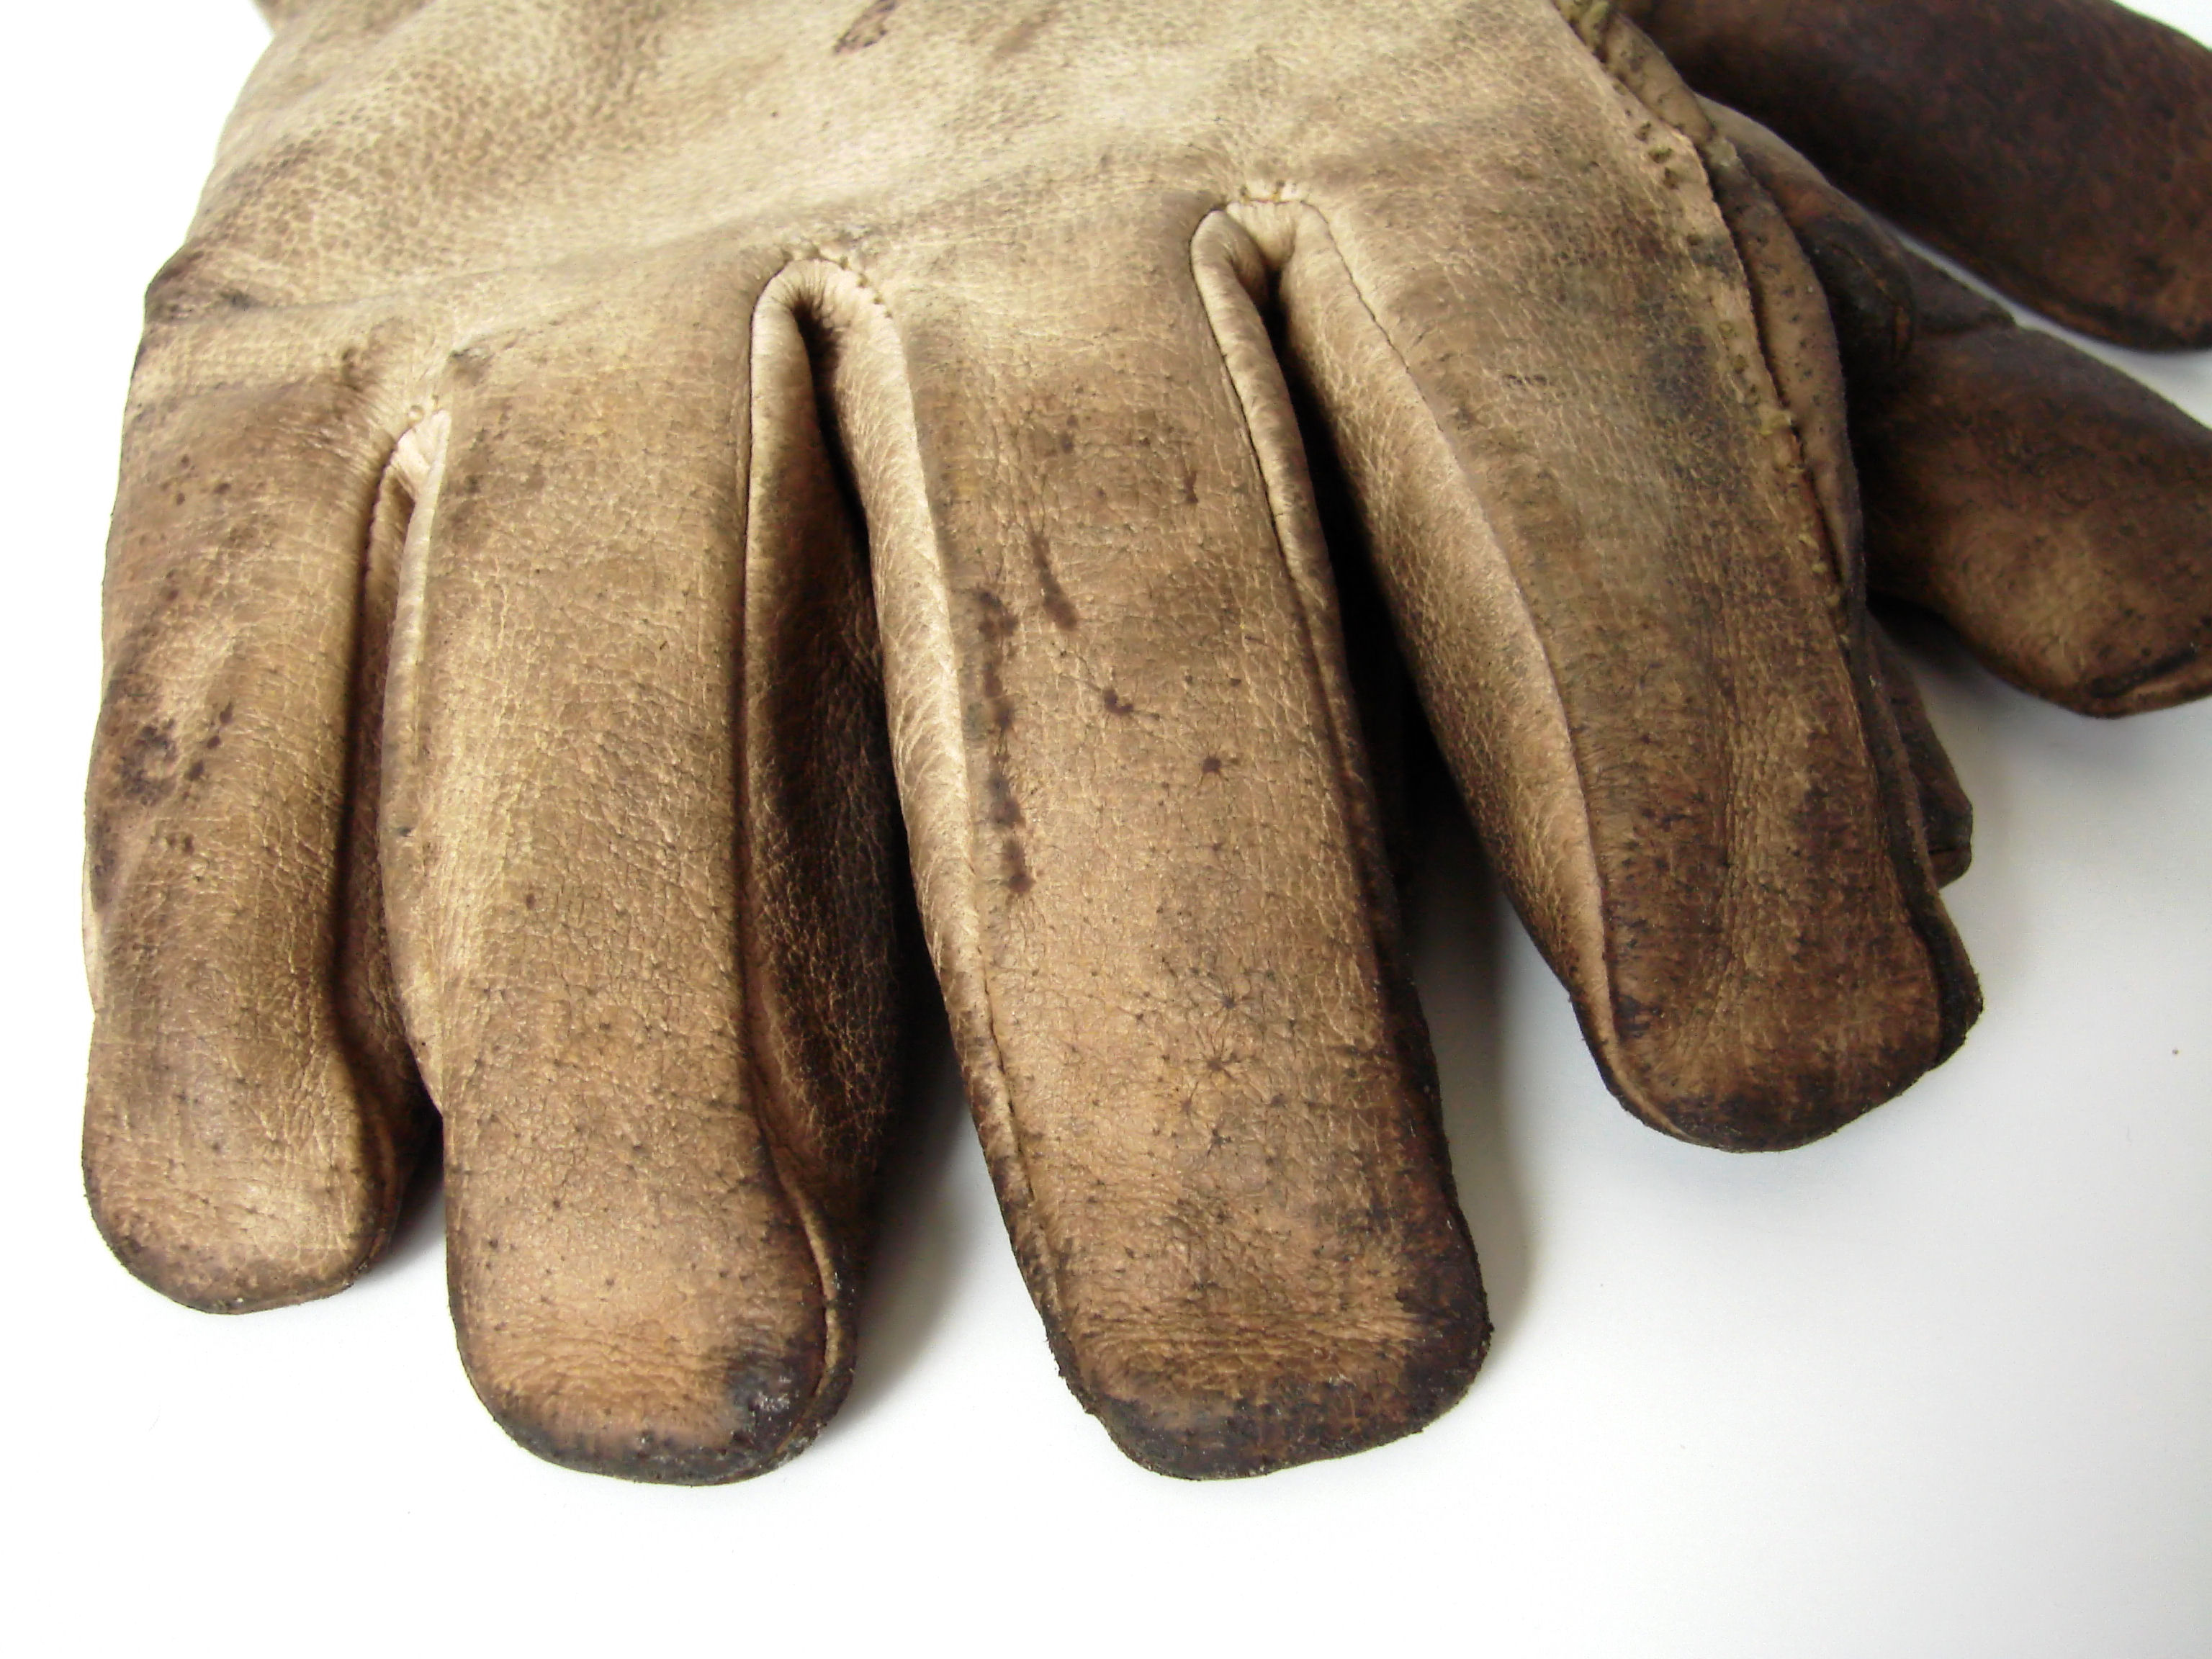 Gutter Cleaning Gloves